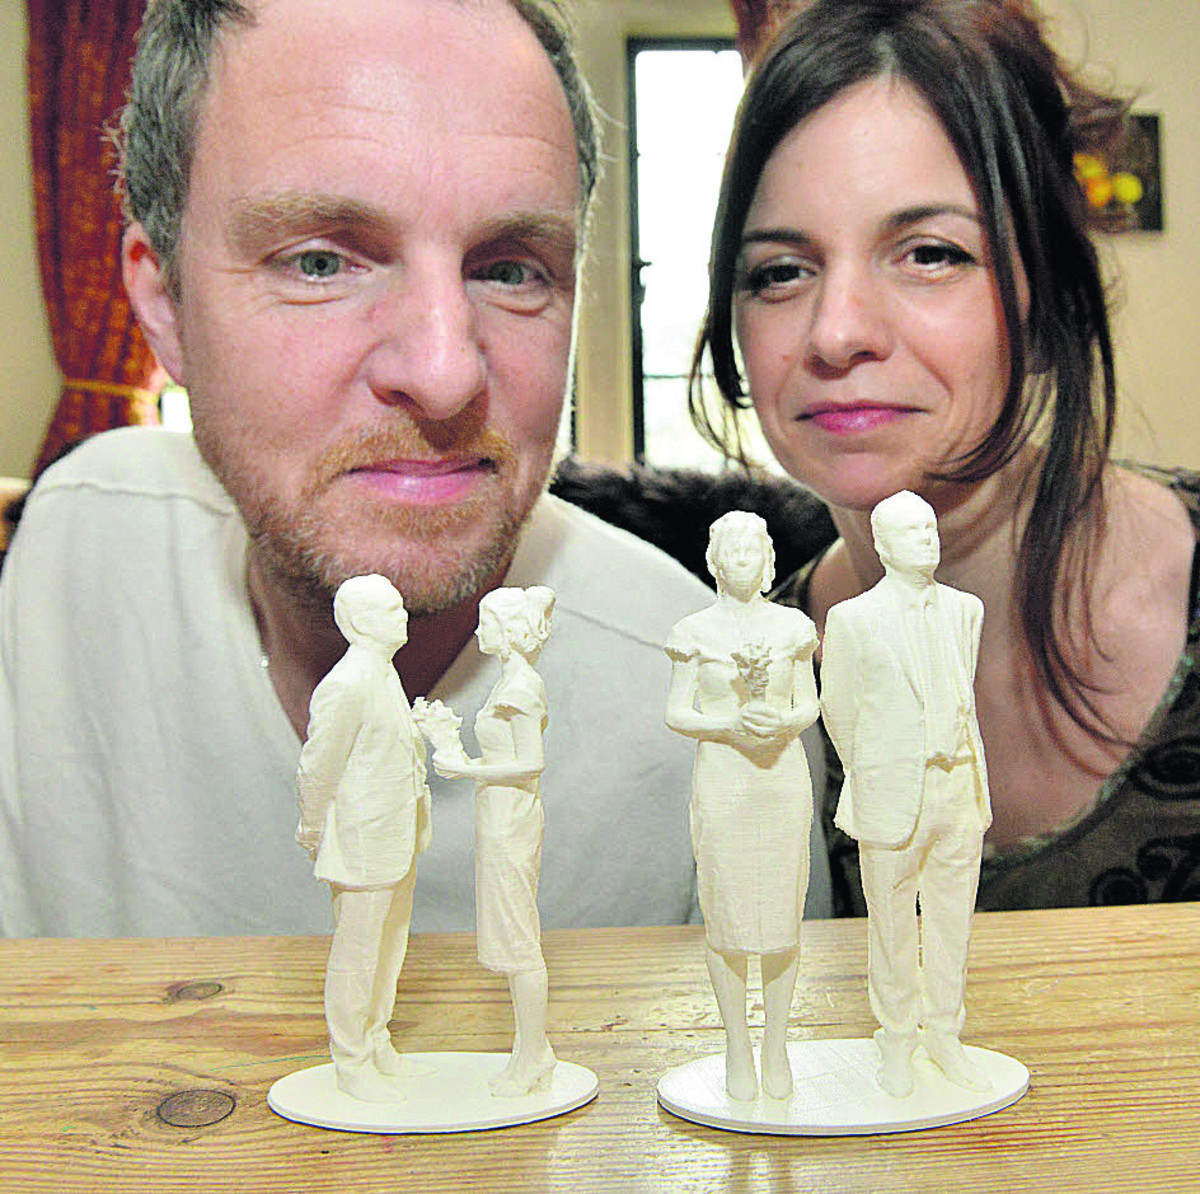 3D printer creates 'selfies' for couple's wedding cake